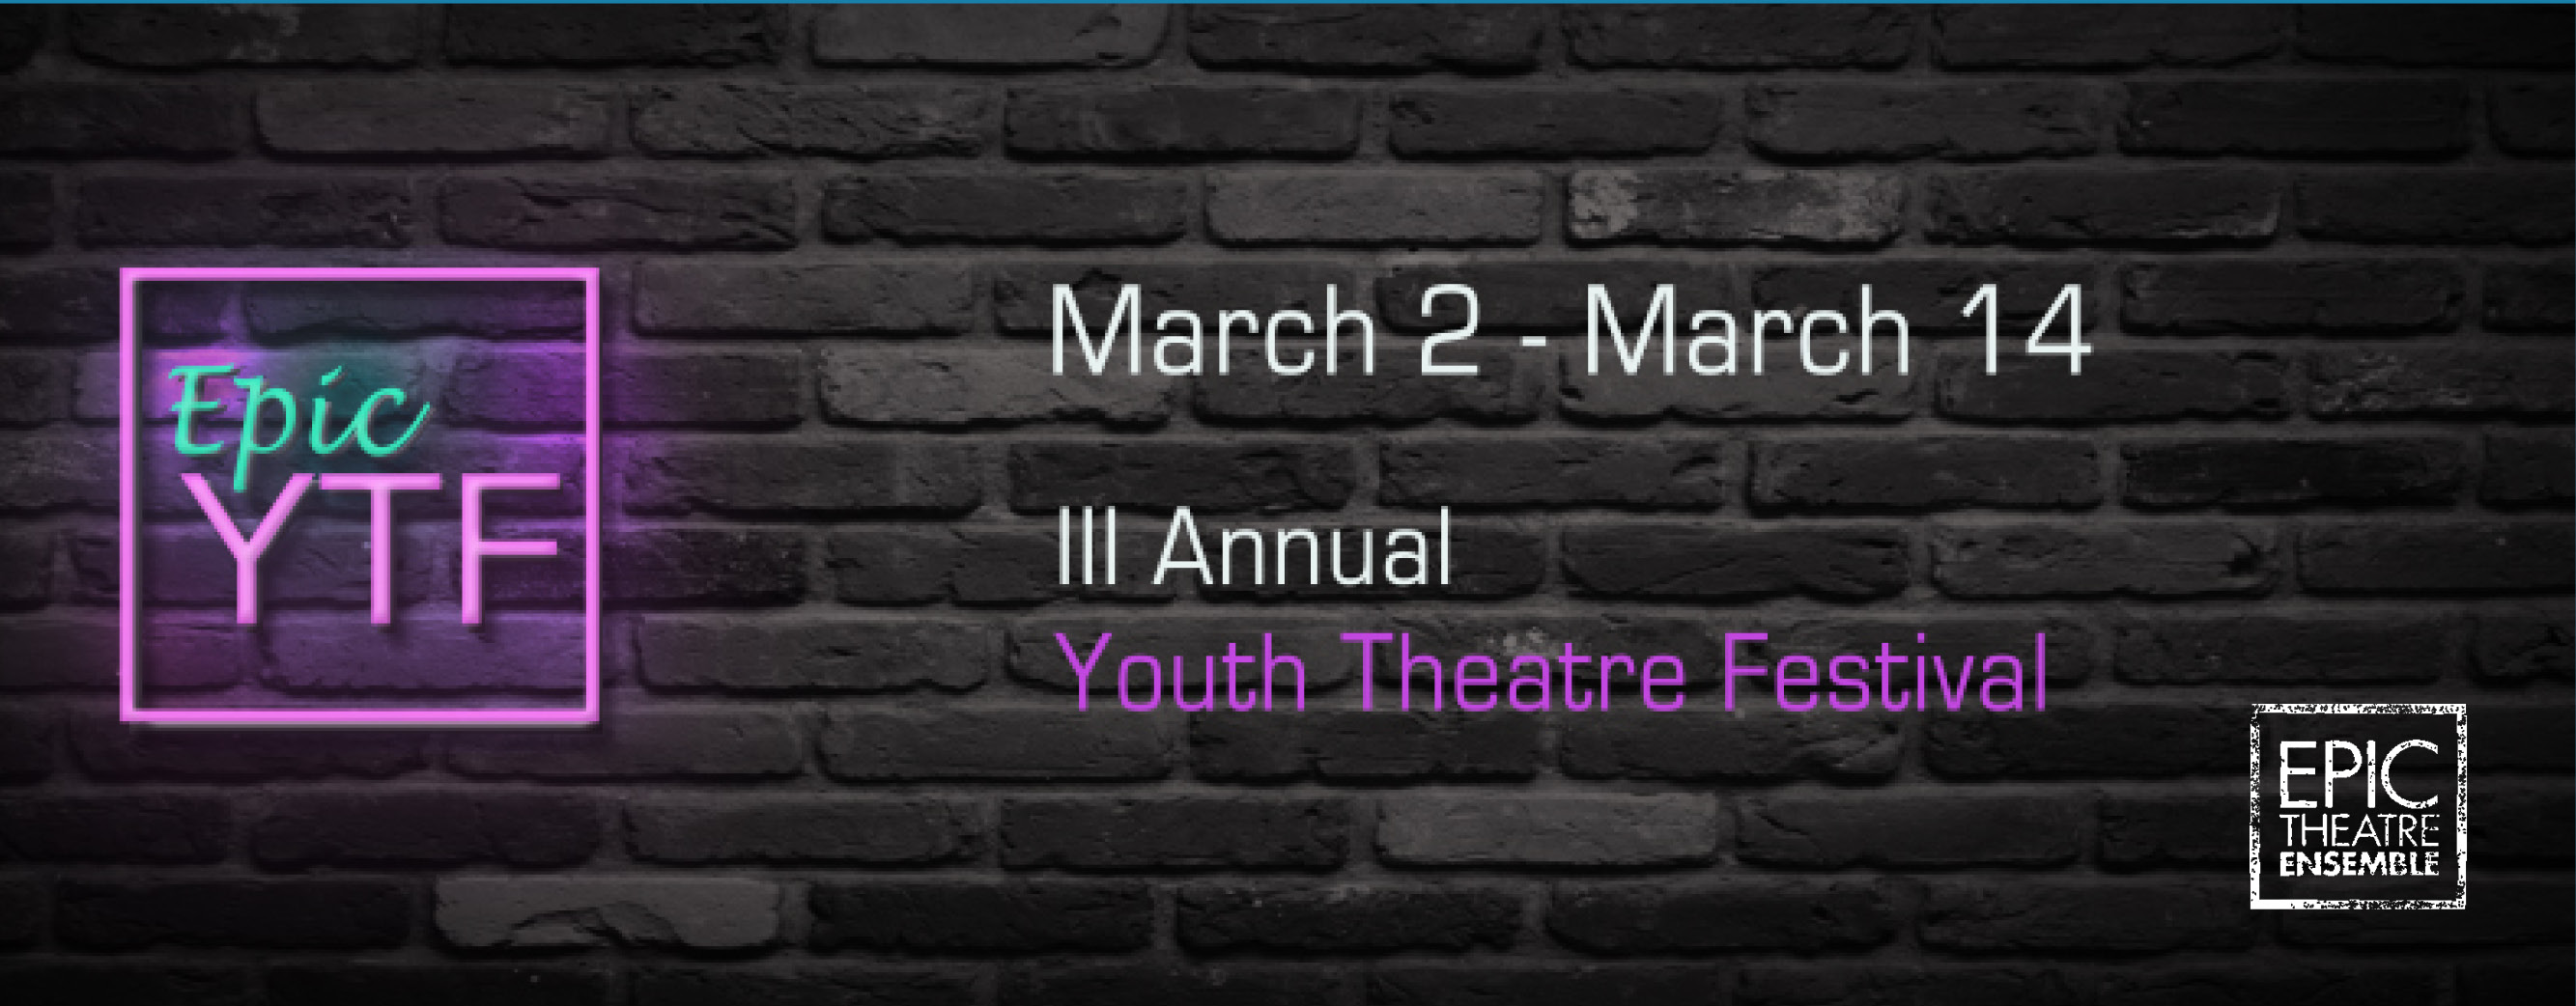 <p>March 2  &#8211; March 14 Epic Theatre Ensemble is proud to present the third edition of its three-week Youth Theatre Festival: Epic YTF. Epic YTF is a celebration of a diverse and inclusive community, fighting for social justice and equality. The festival showcases original performances by students from the award-winning [&hellip;]</p>